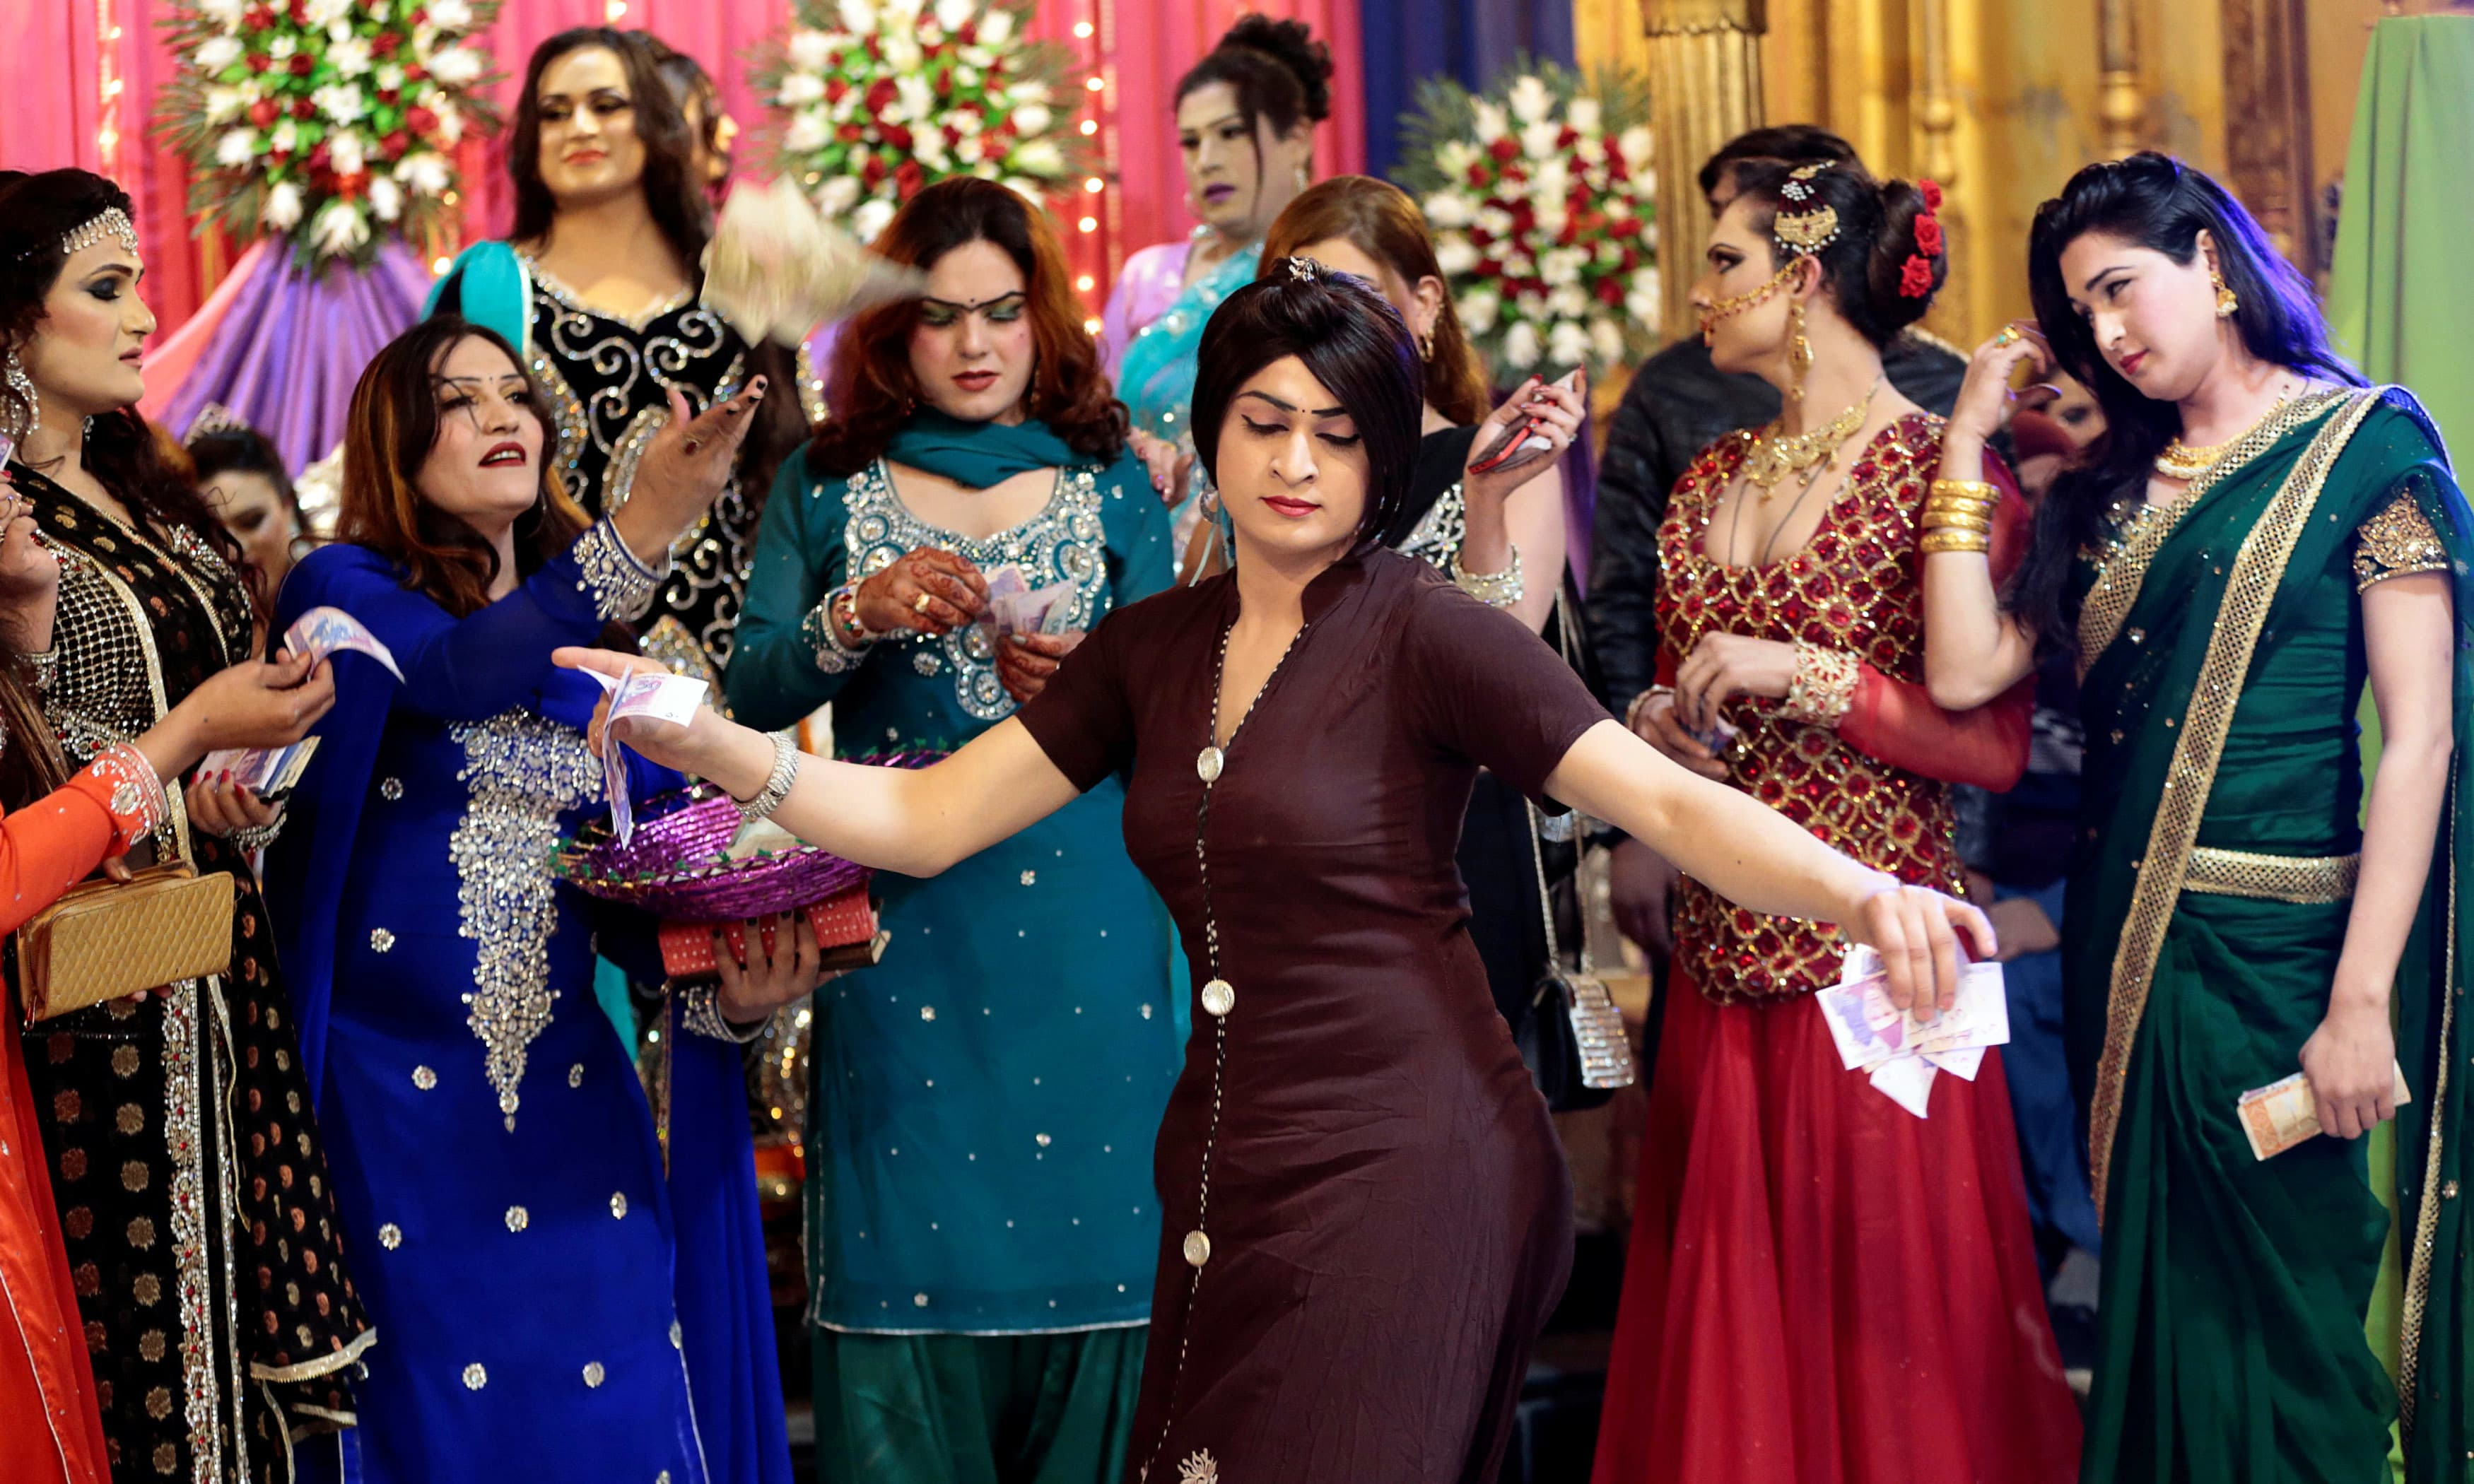 Members of the transgender community dance at Shakeela's party in Peshawar. —Reuters